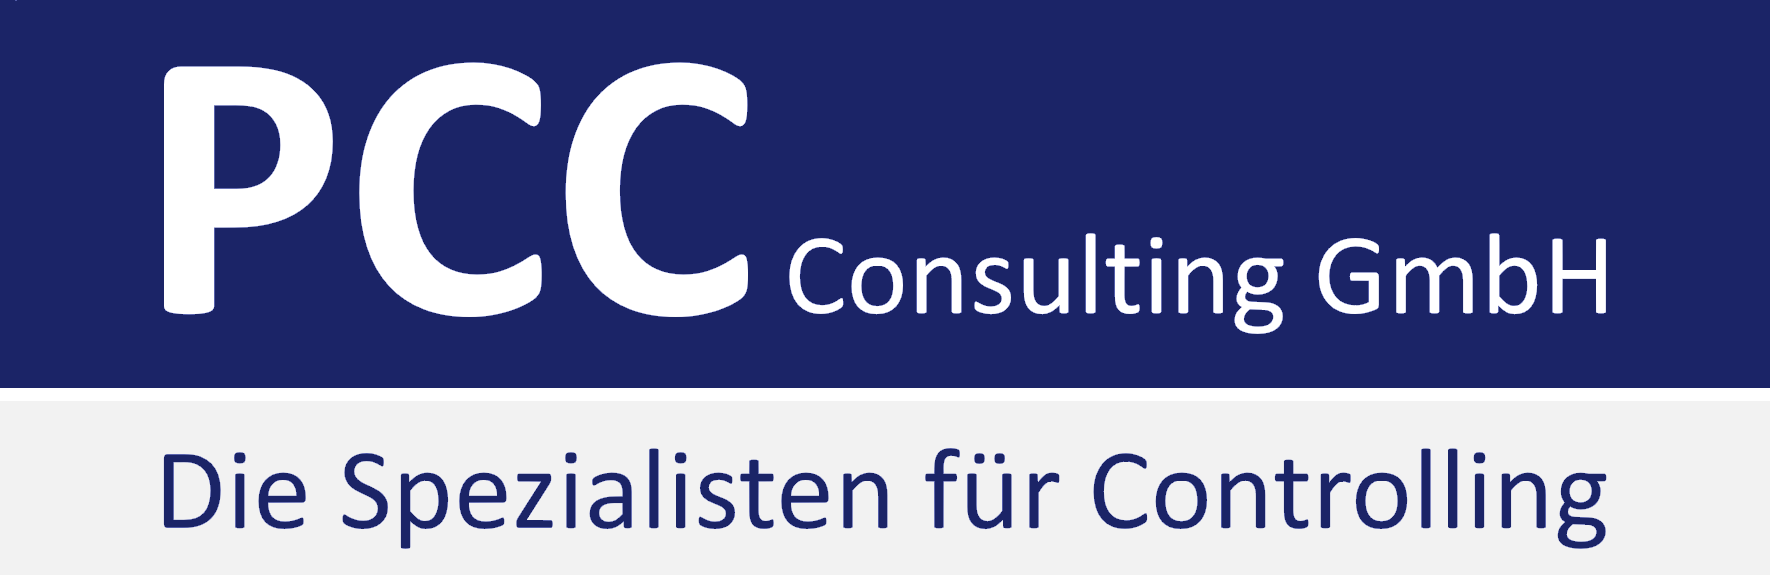 PCC Consulting GmbH